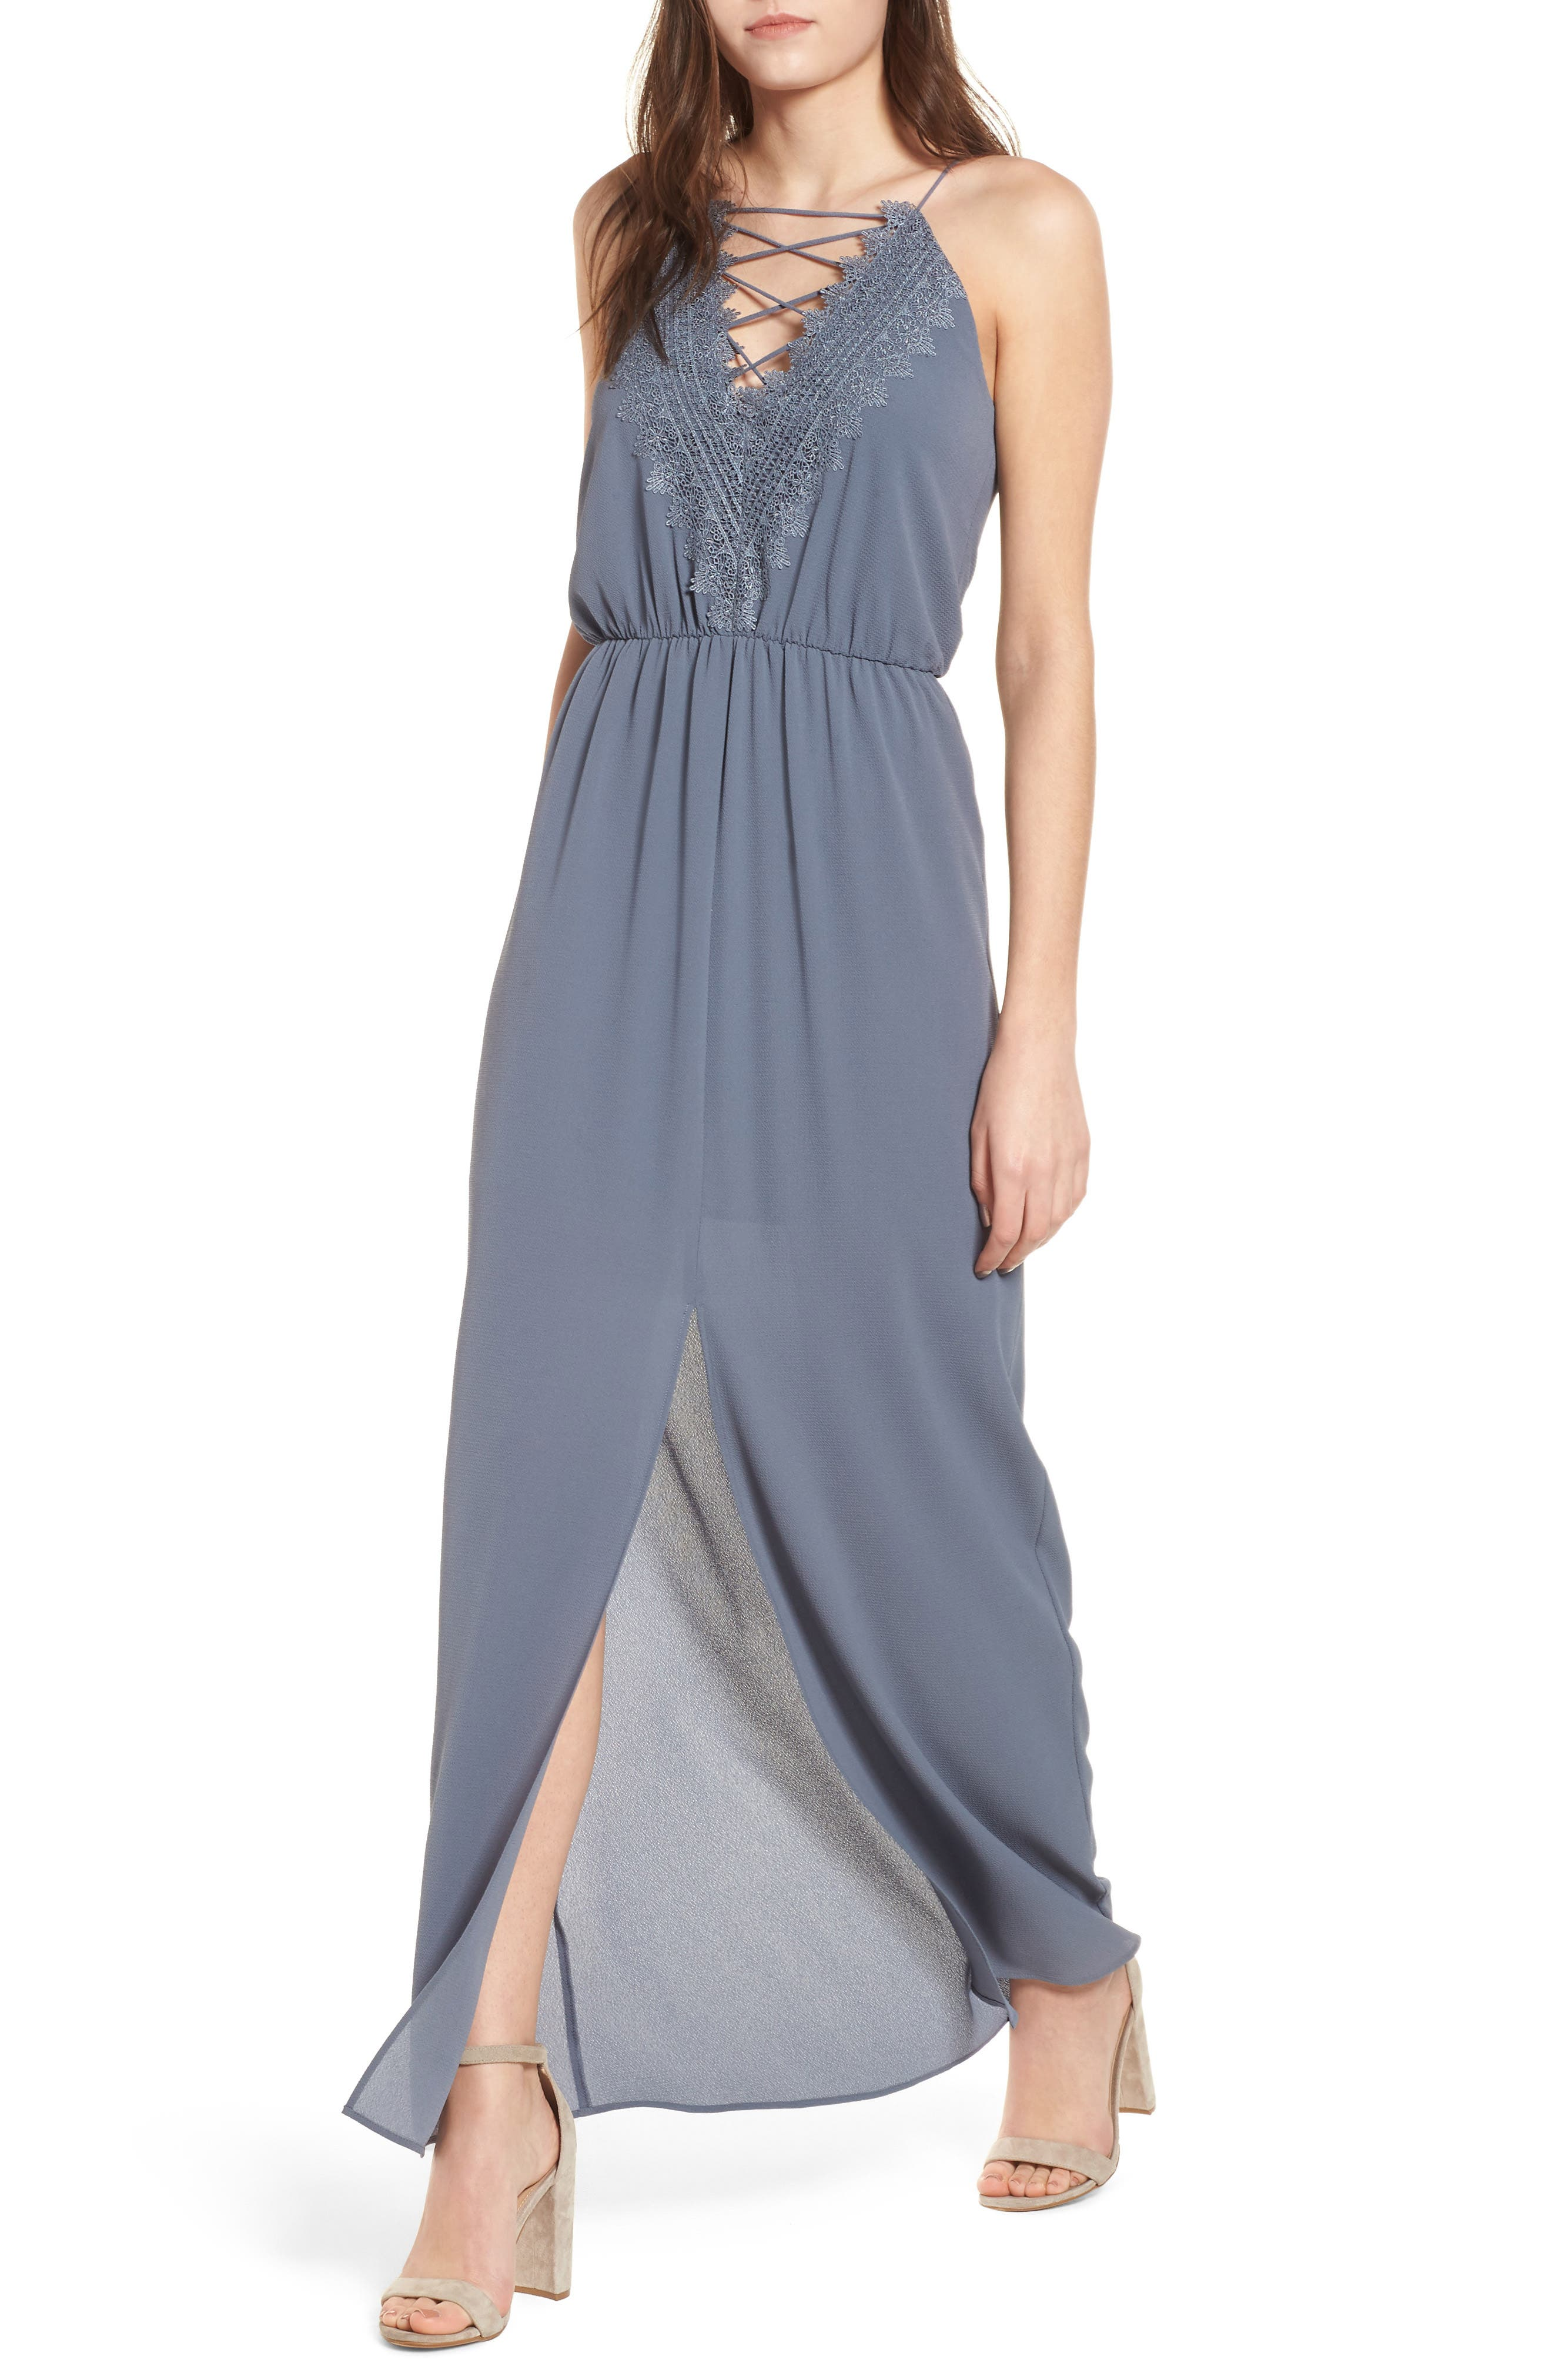 Posie Maxi Dress,                         Main,                         color, Grey Grisaille